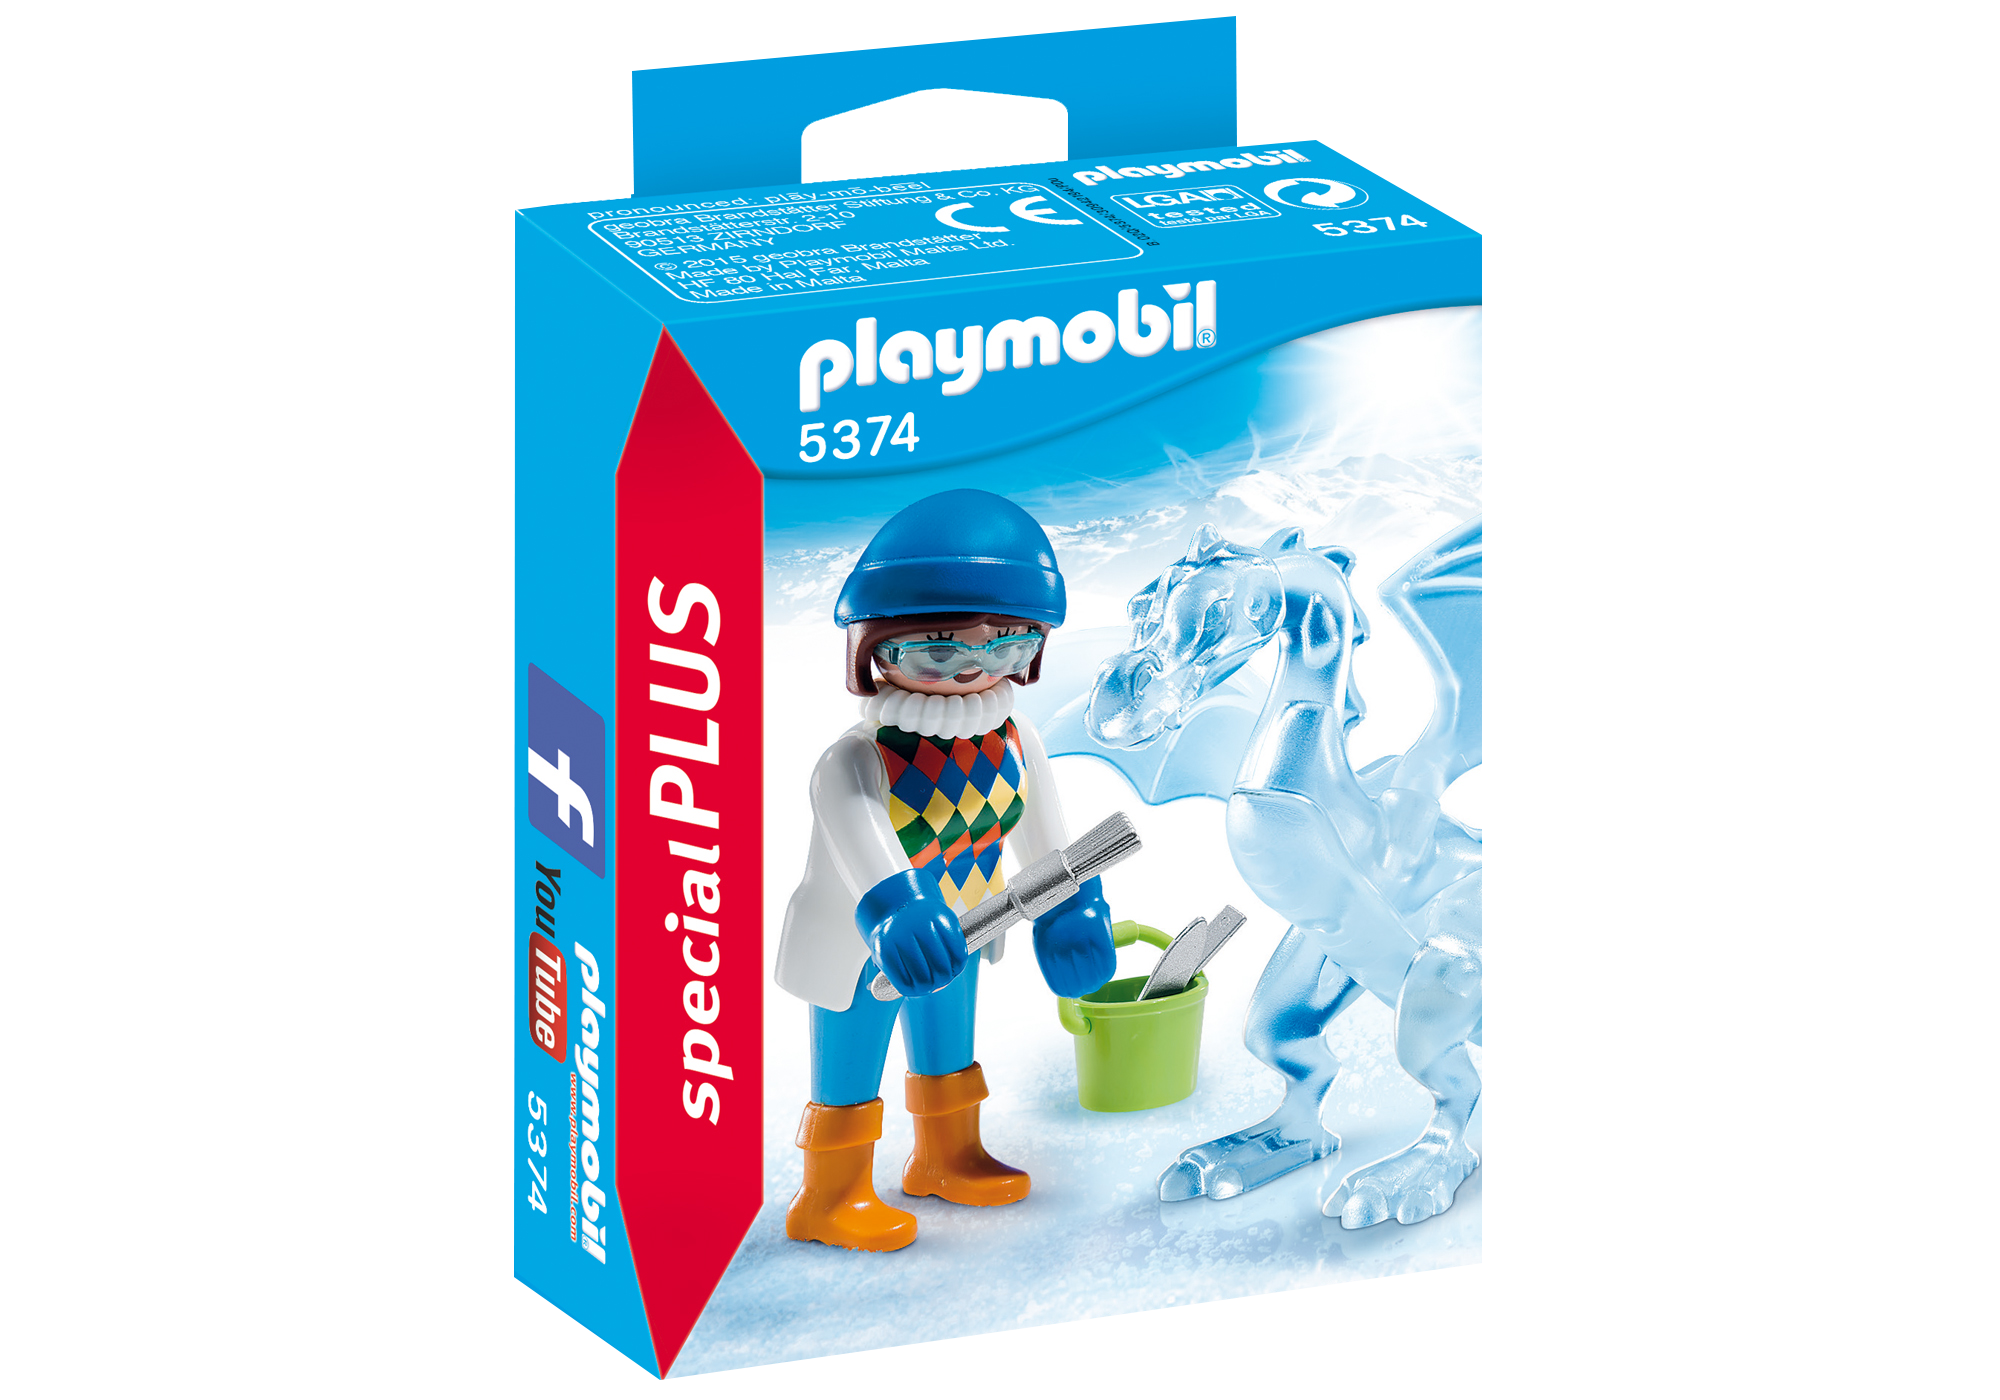 http://media.playmobil.com/i/playmobil/5374_product_box_front